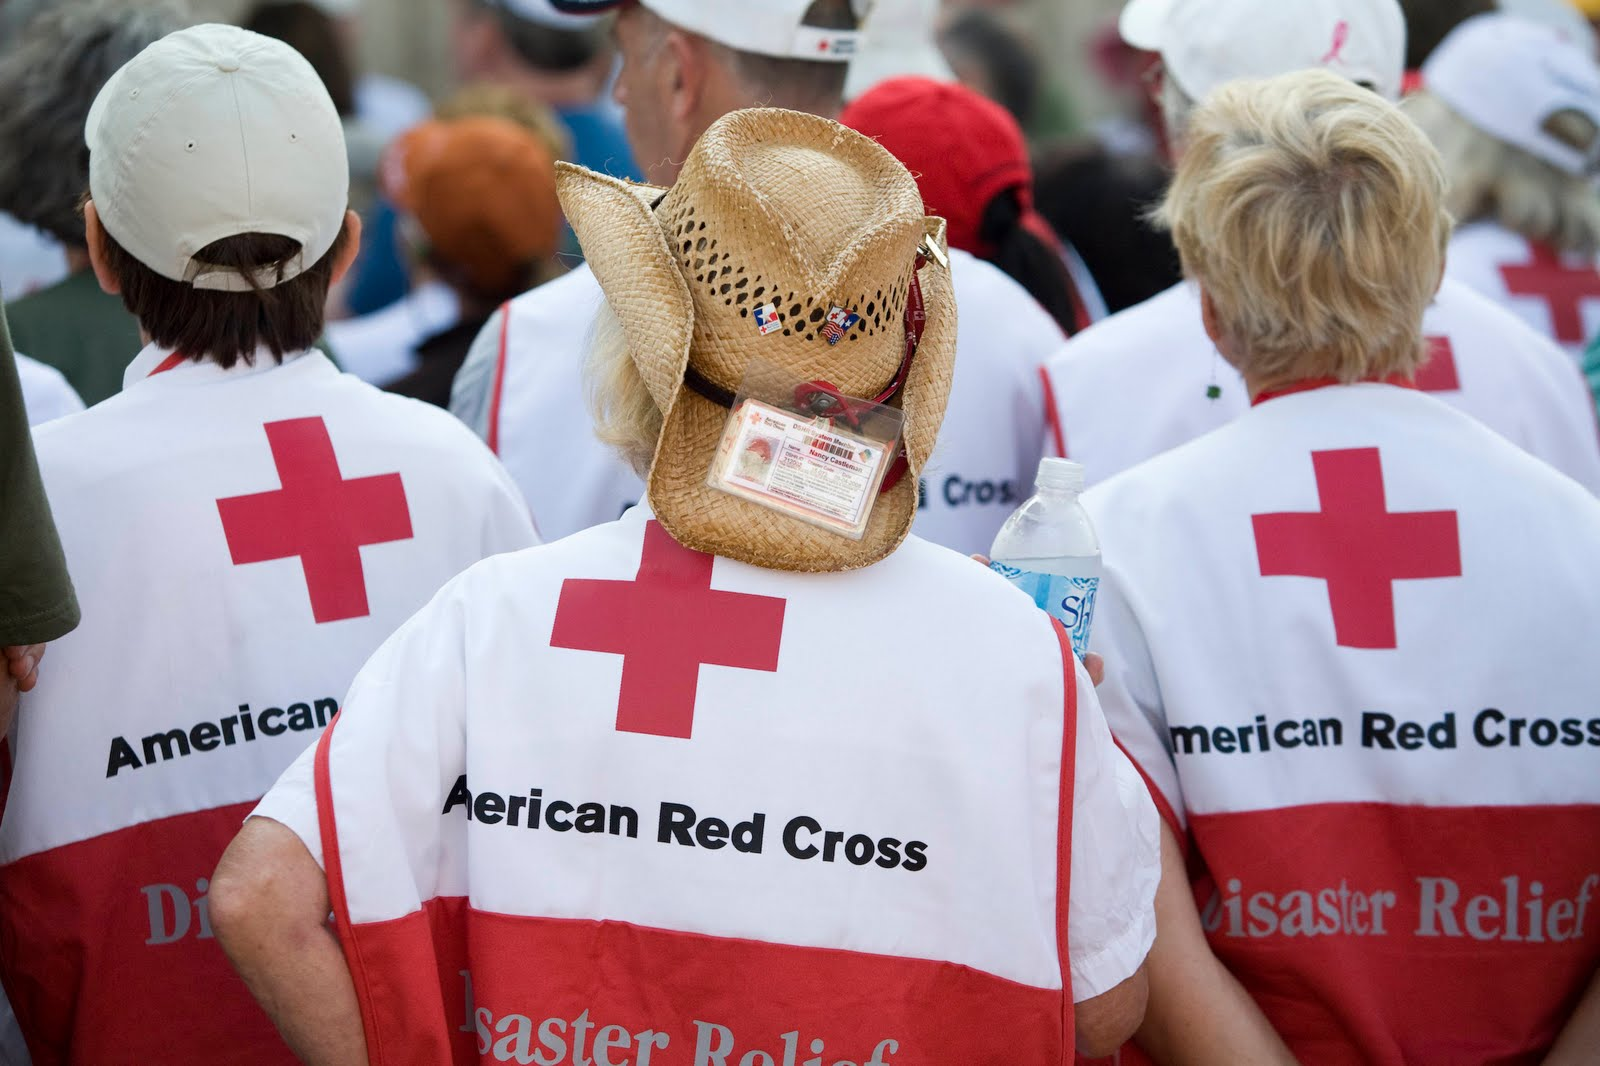 American Red Cross Vt And The Nh Valley Wptz Story